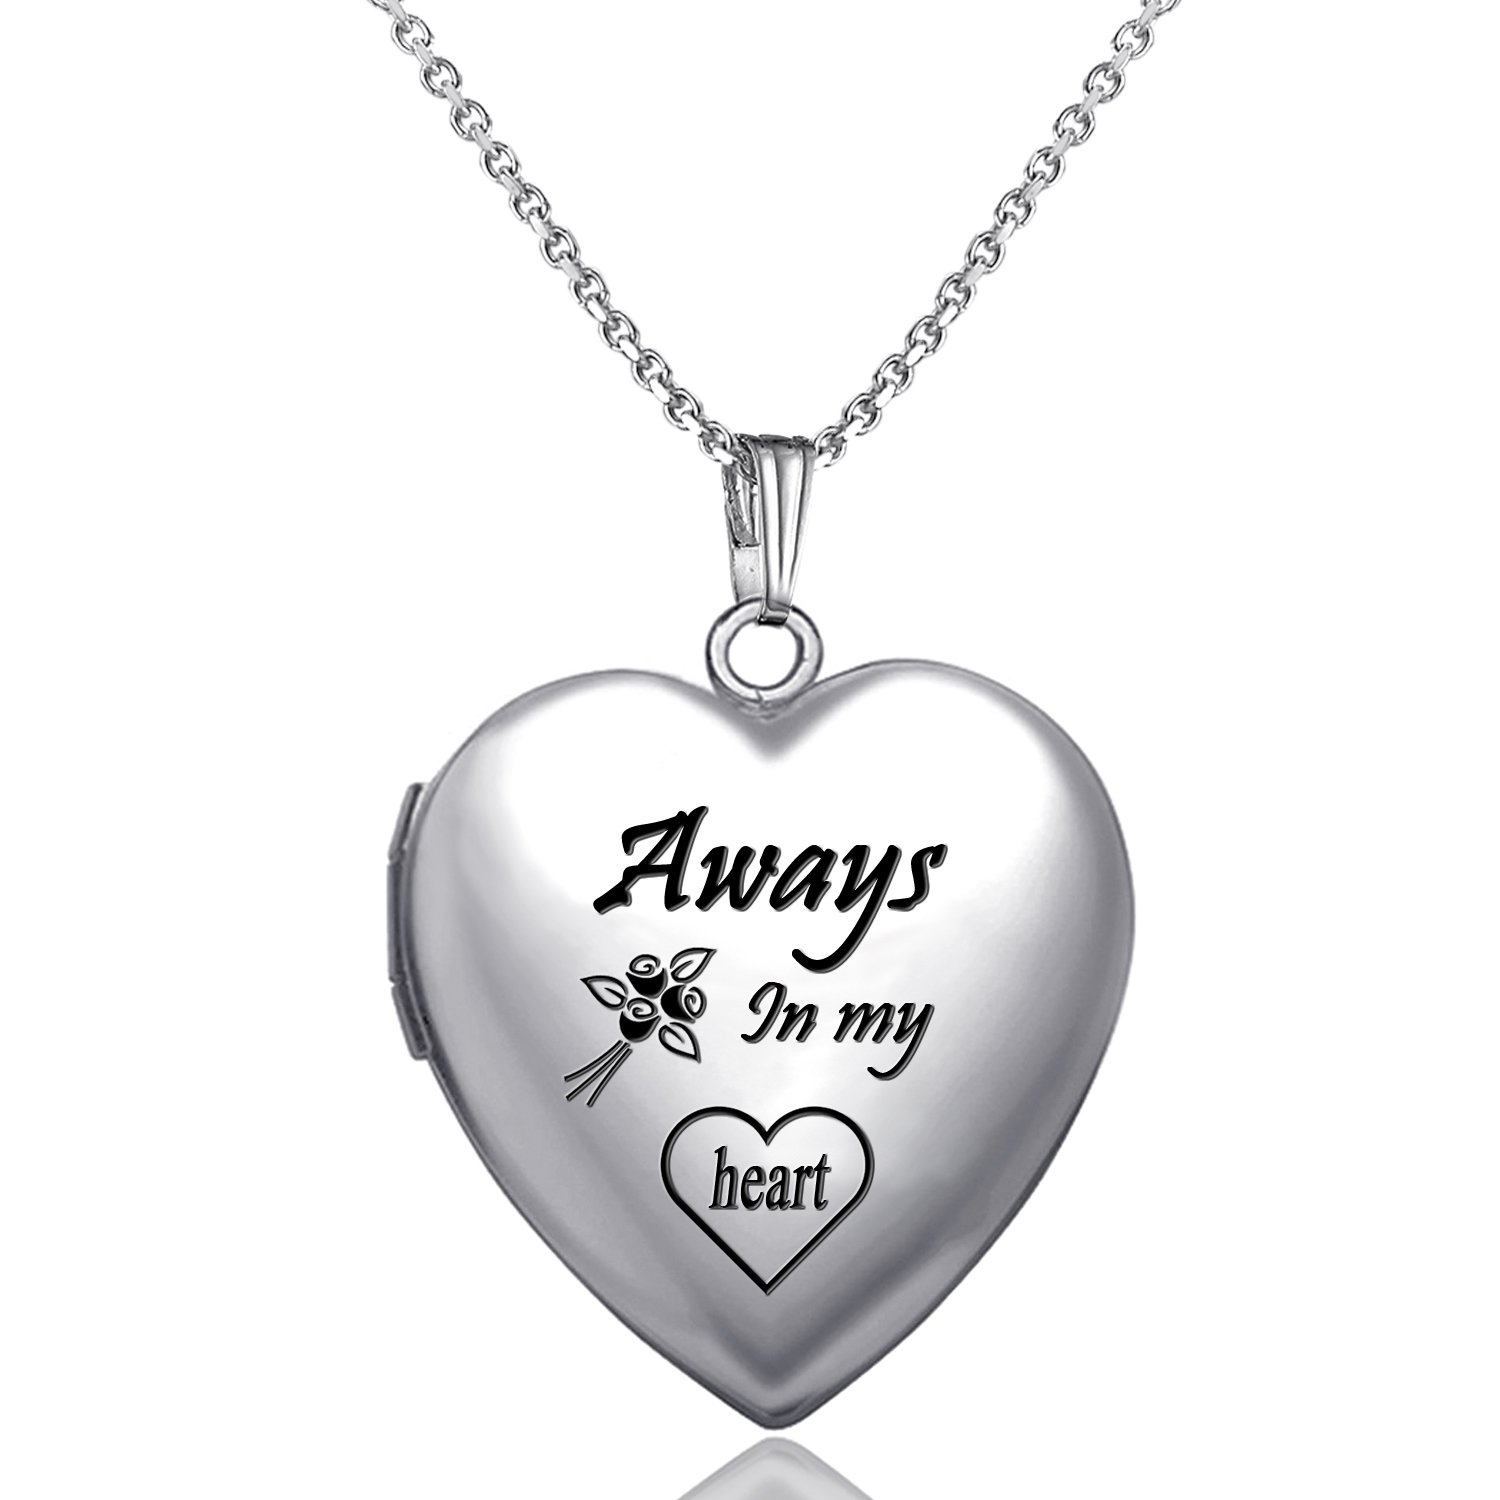 YOUFENG Love Heart Locket Necklace That Holds Pictures Engraved Always in My Heart Memories Photo Lockets (Heart Locket Necklace)